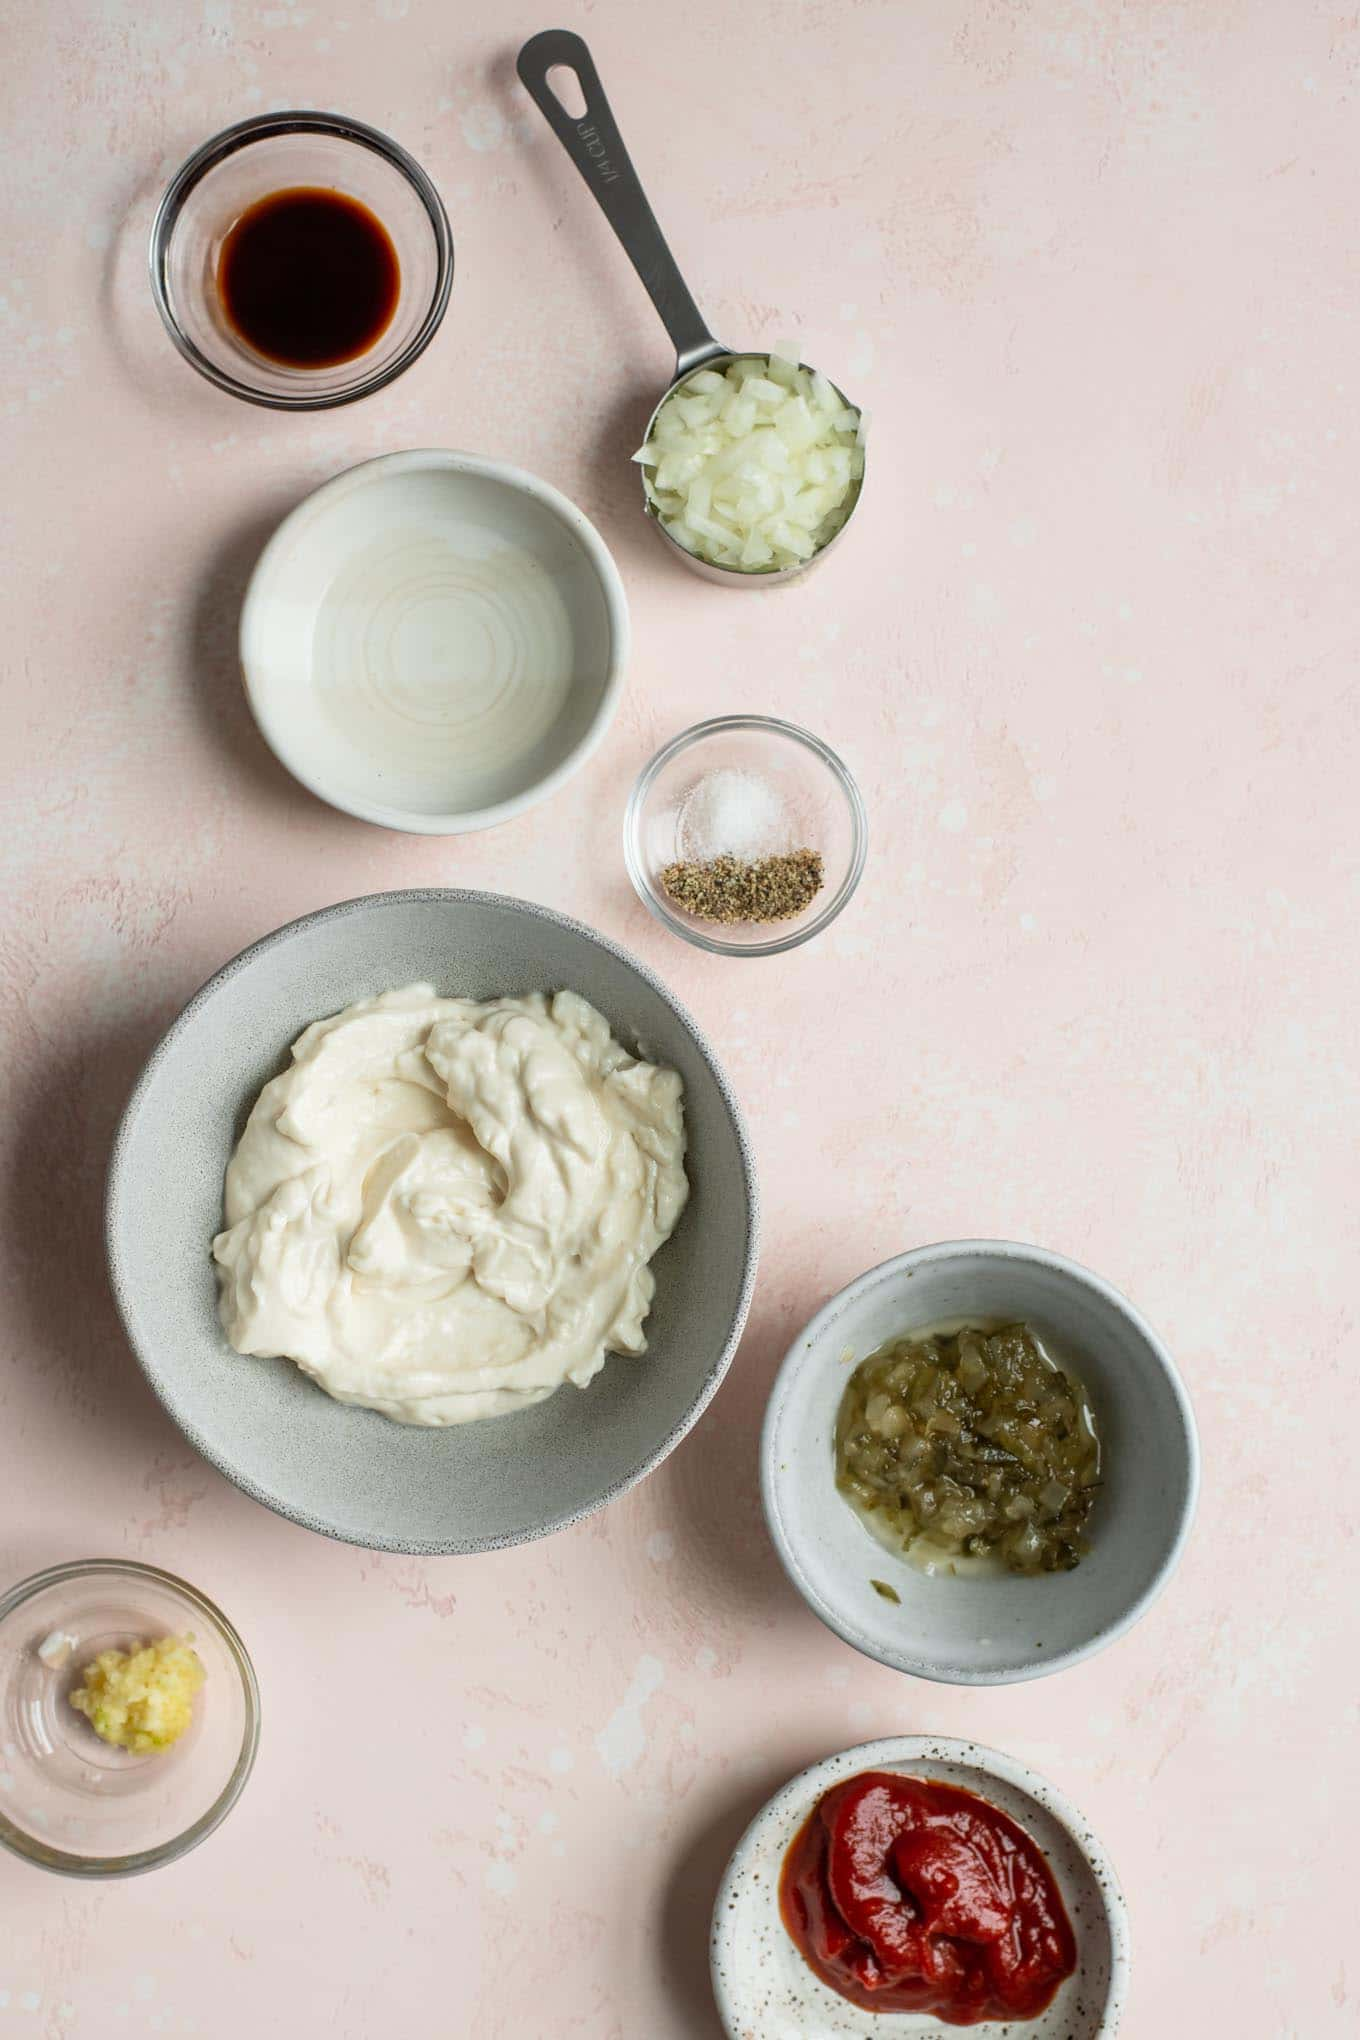 ingredients for the dressing mise-en-place in bowls